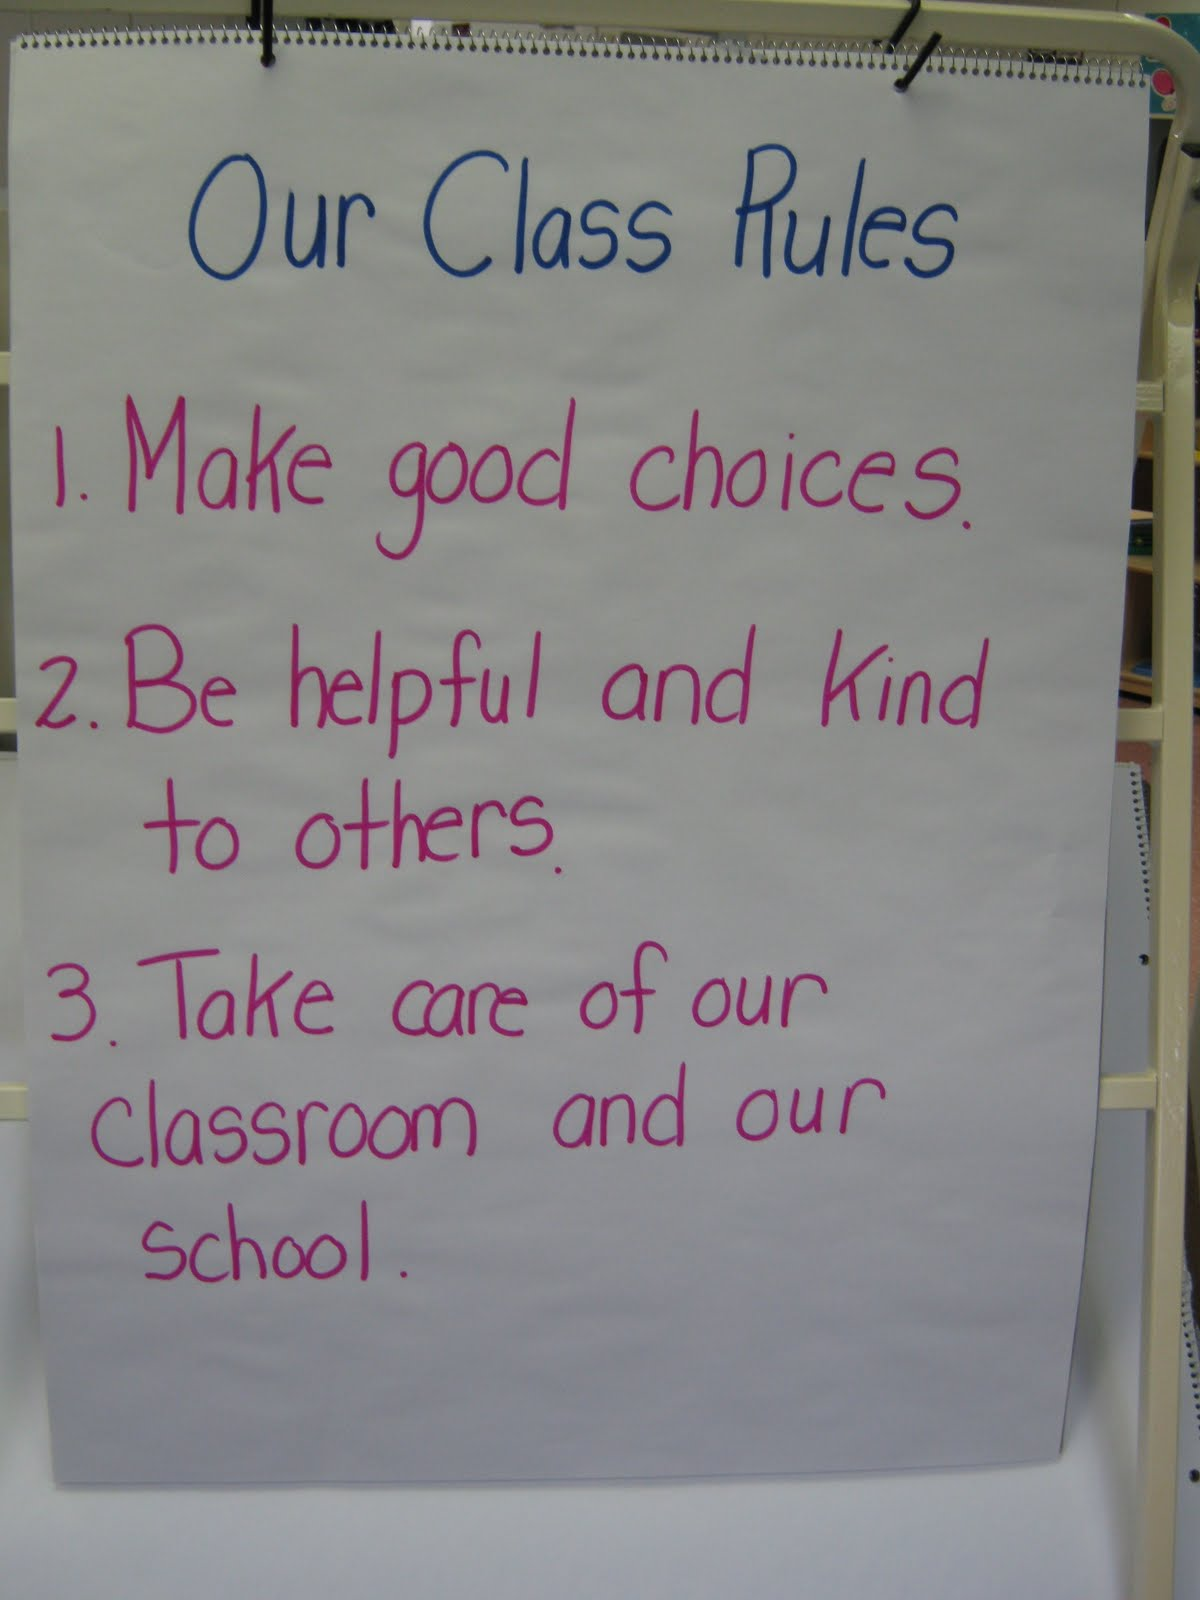 ... rules to make our classroom and school safe and fun for learning we